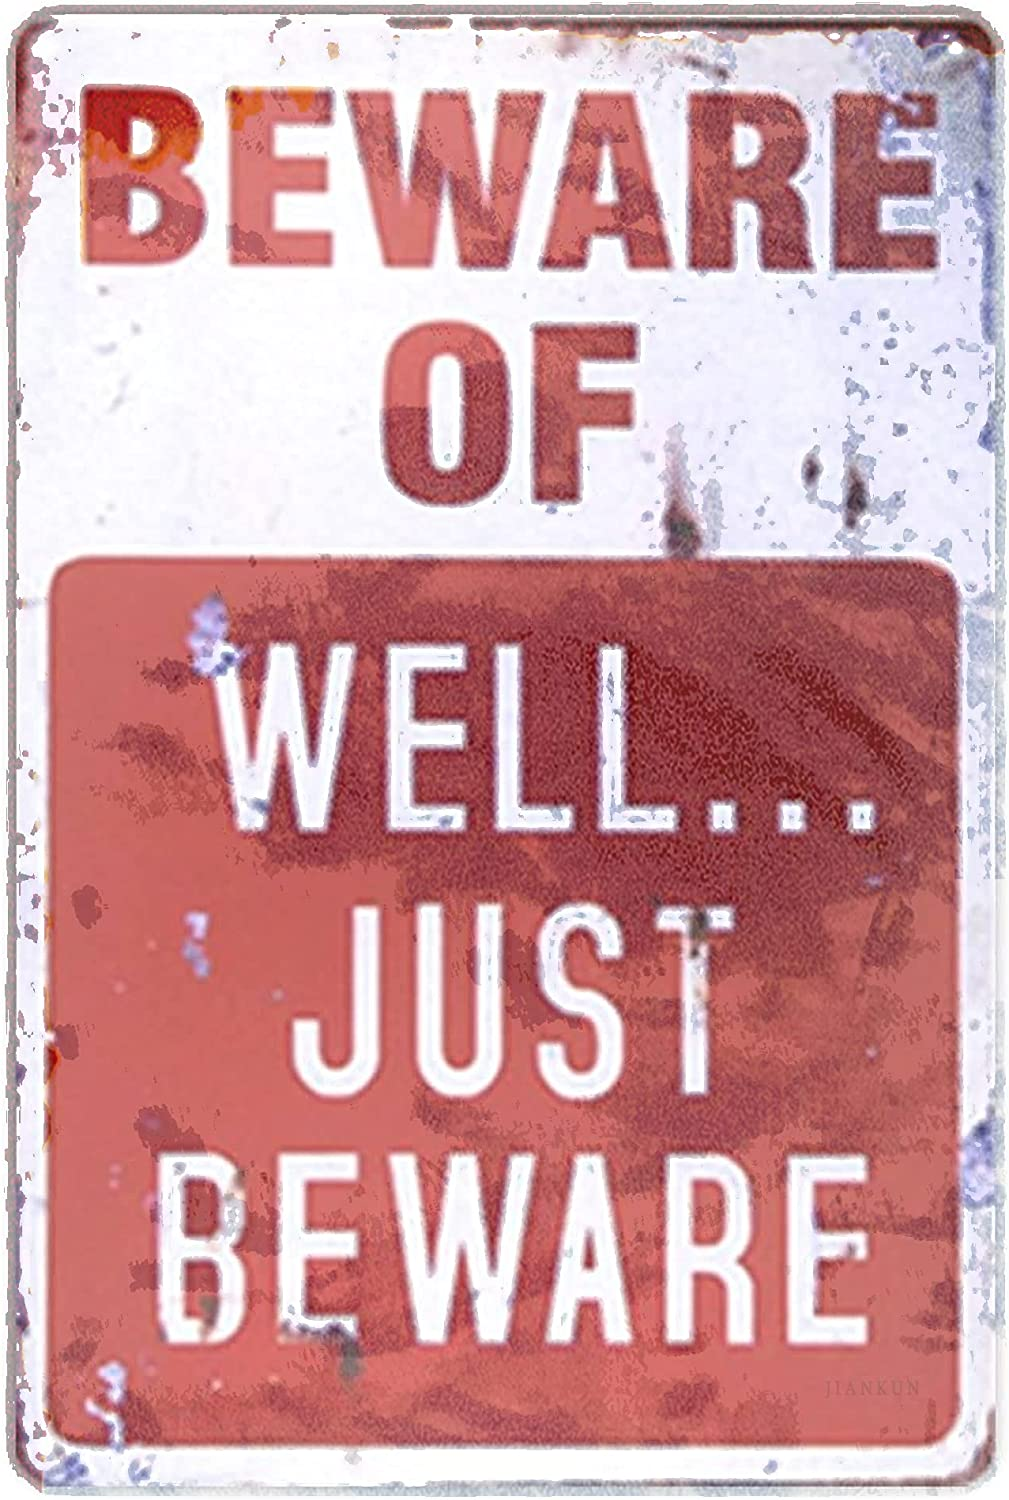 J.DXHYA Man Cave Decor 2 Pieces New arrival Well Max 48% OFF Beware of Metal Just